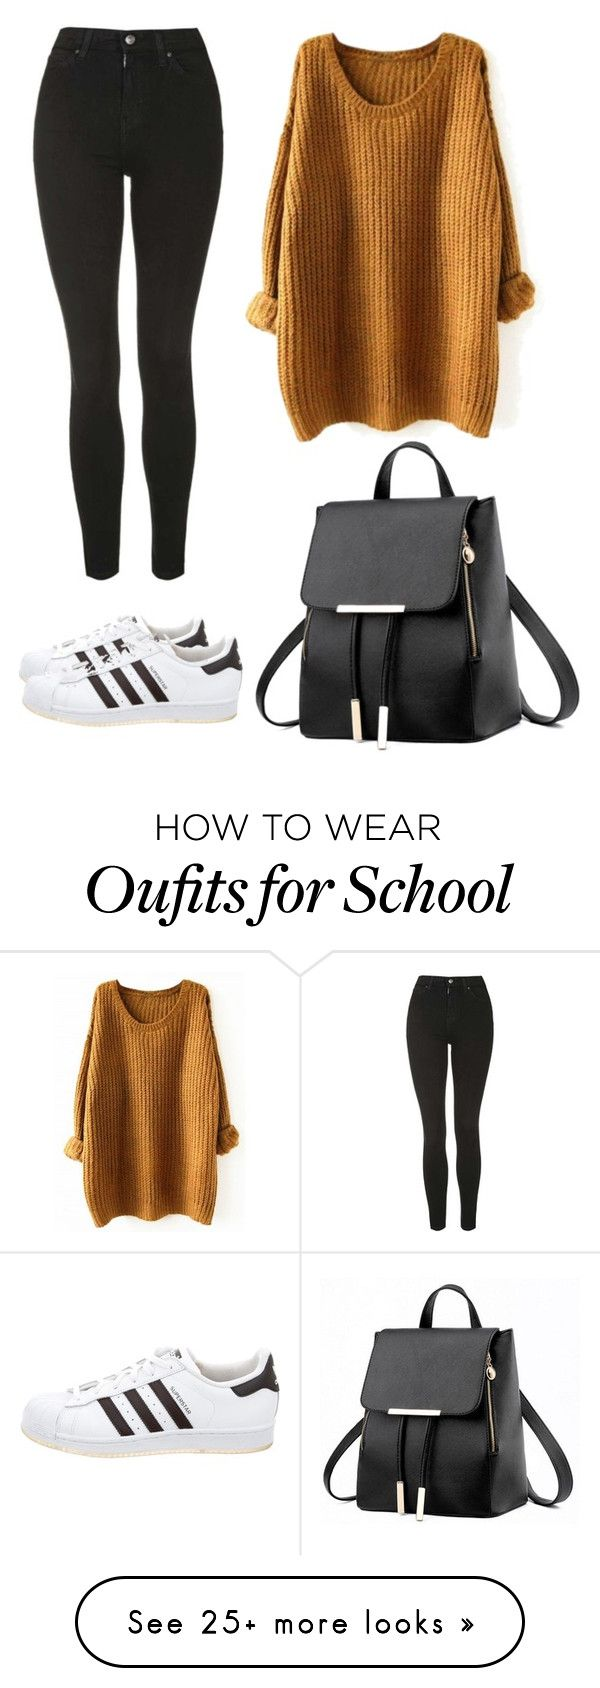 """Back to school for fall"" by dagimstang on Polyvore featuring Topshop and adidas"